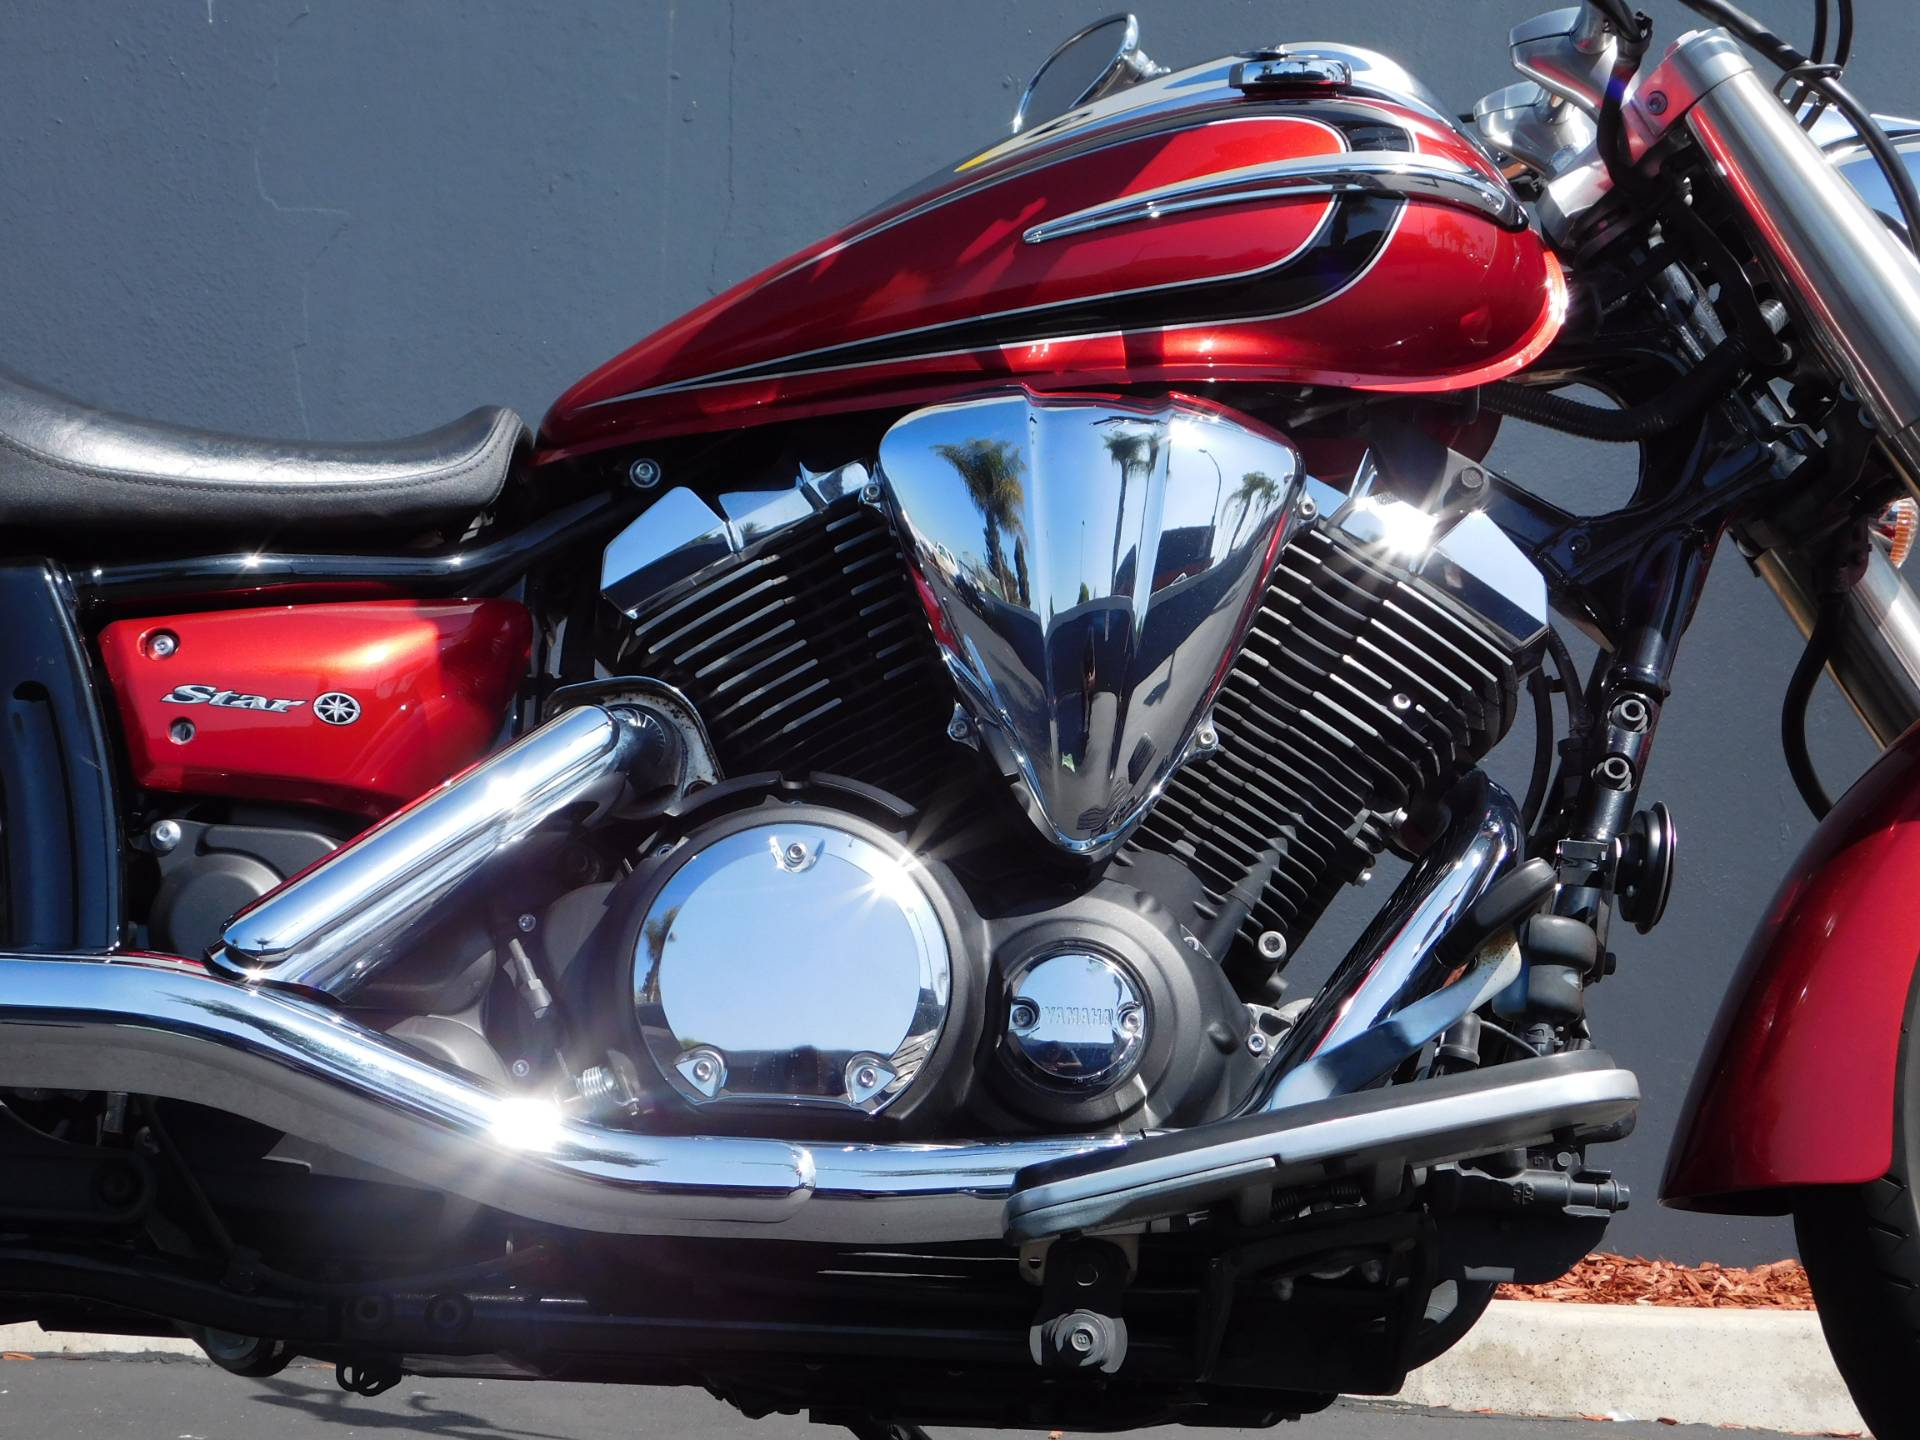 2012 Yamaha V Star 950 in Chula Vista, California - Photo 8